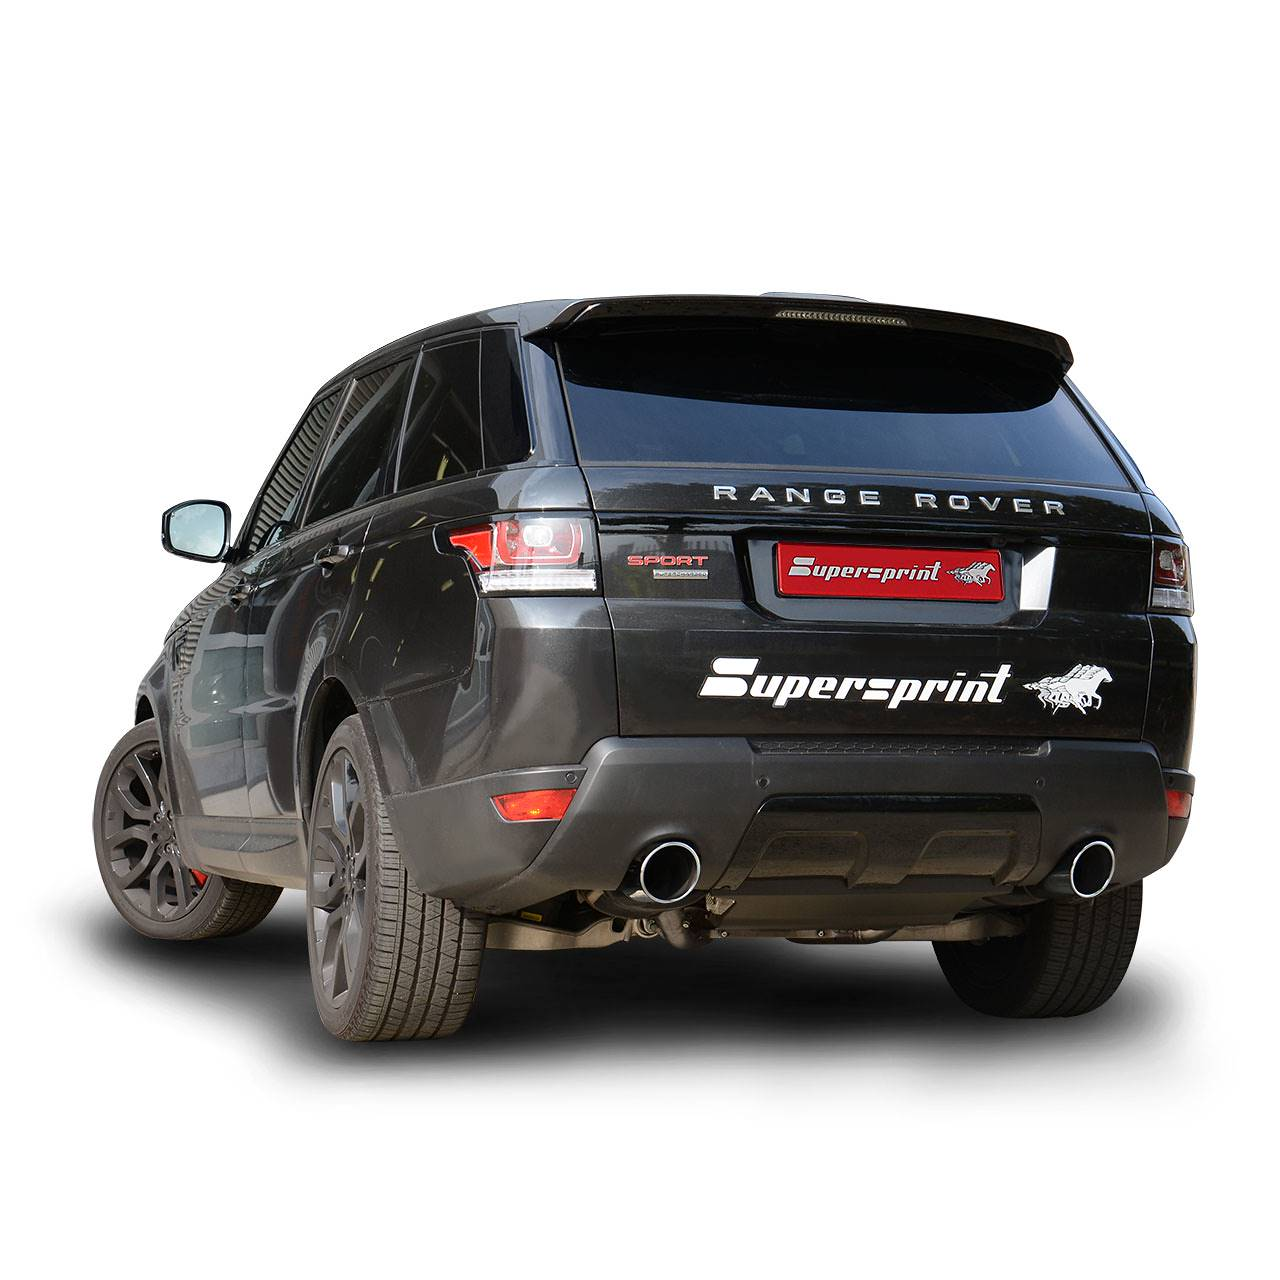 range rover sport v8 supercharged 510 hp 2013. Black Bedroom Furniture Sets. Home Design Ideas